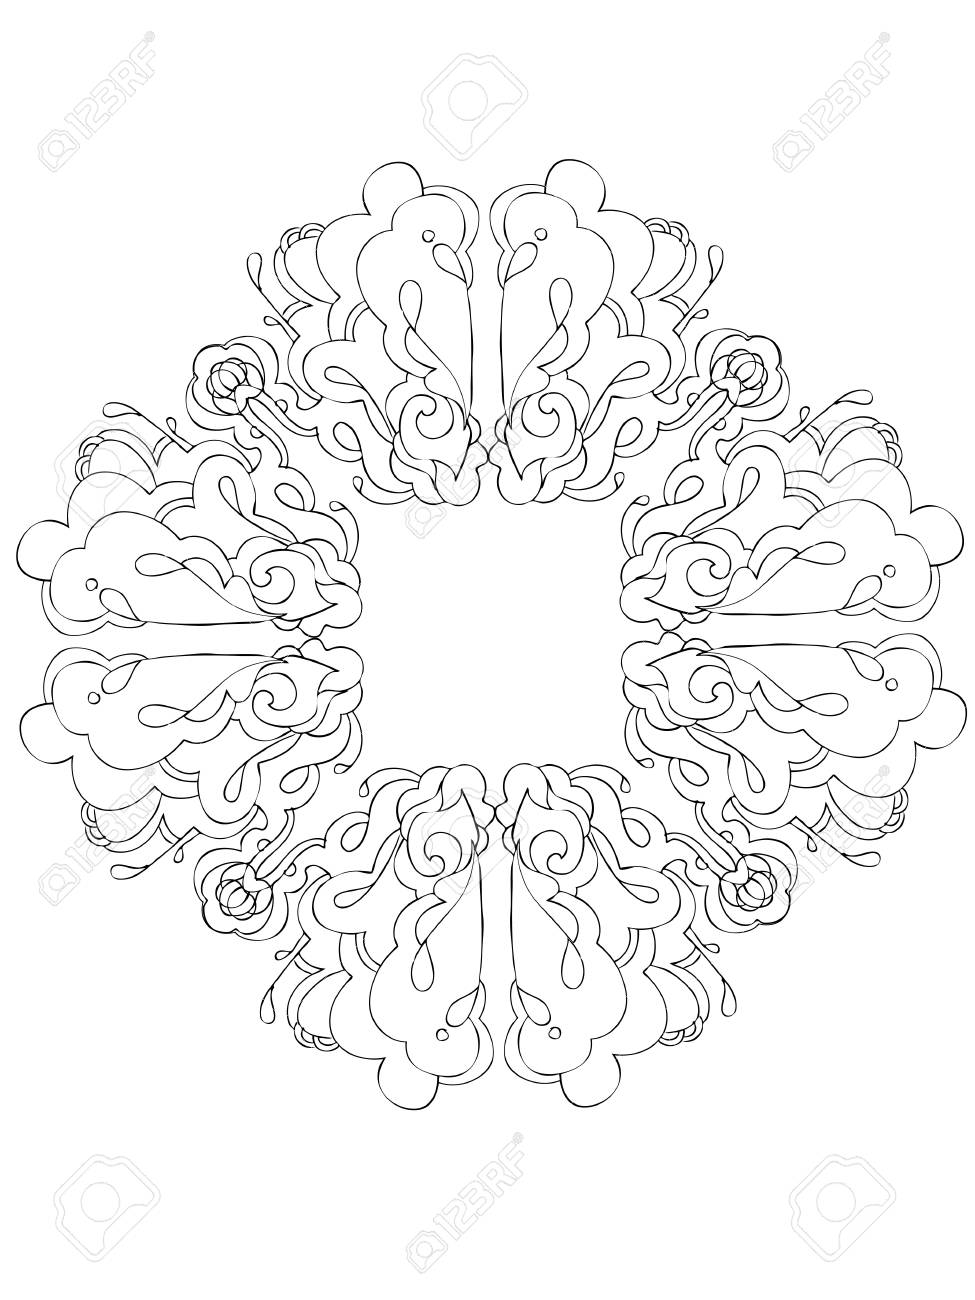 abstract graphic design in black and white Stock Vector - 12358249